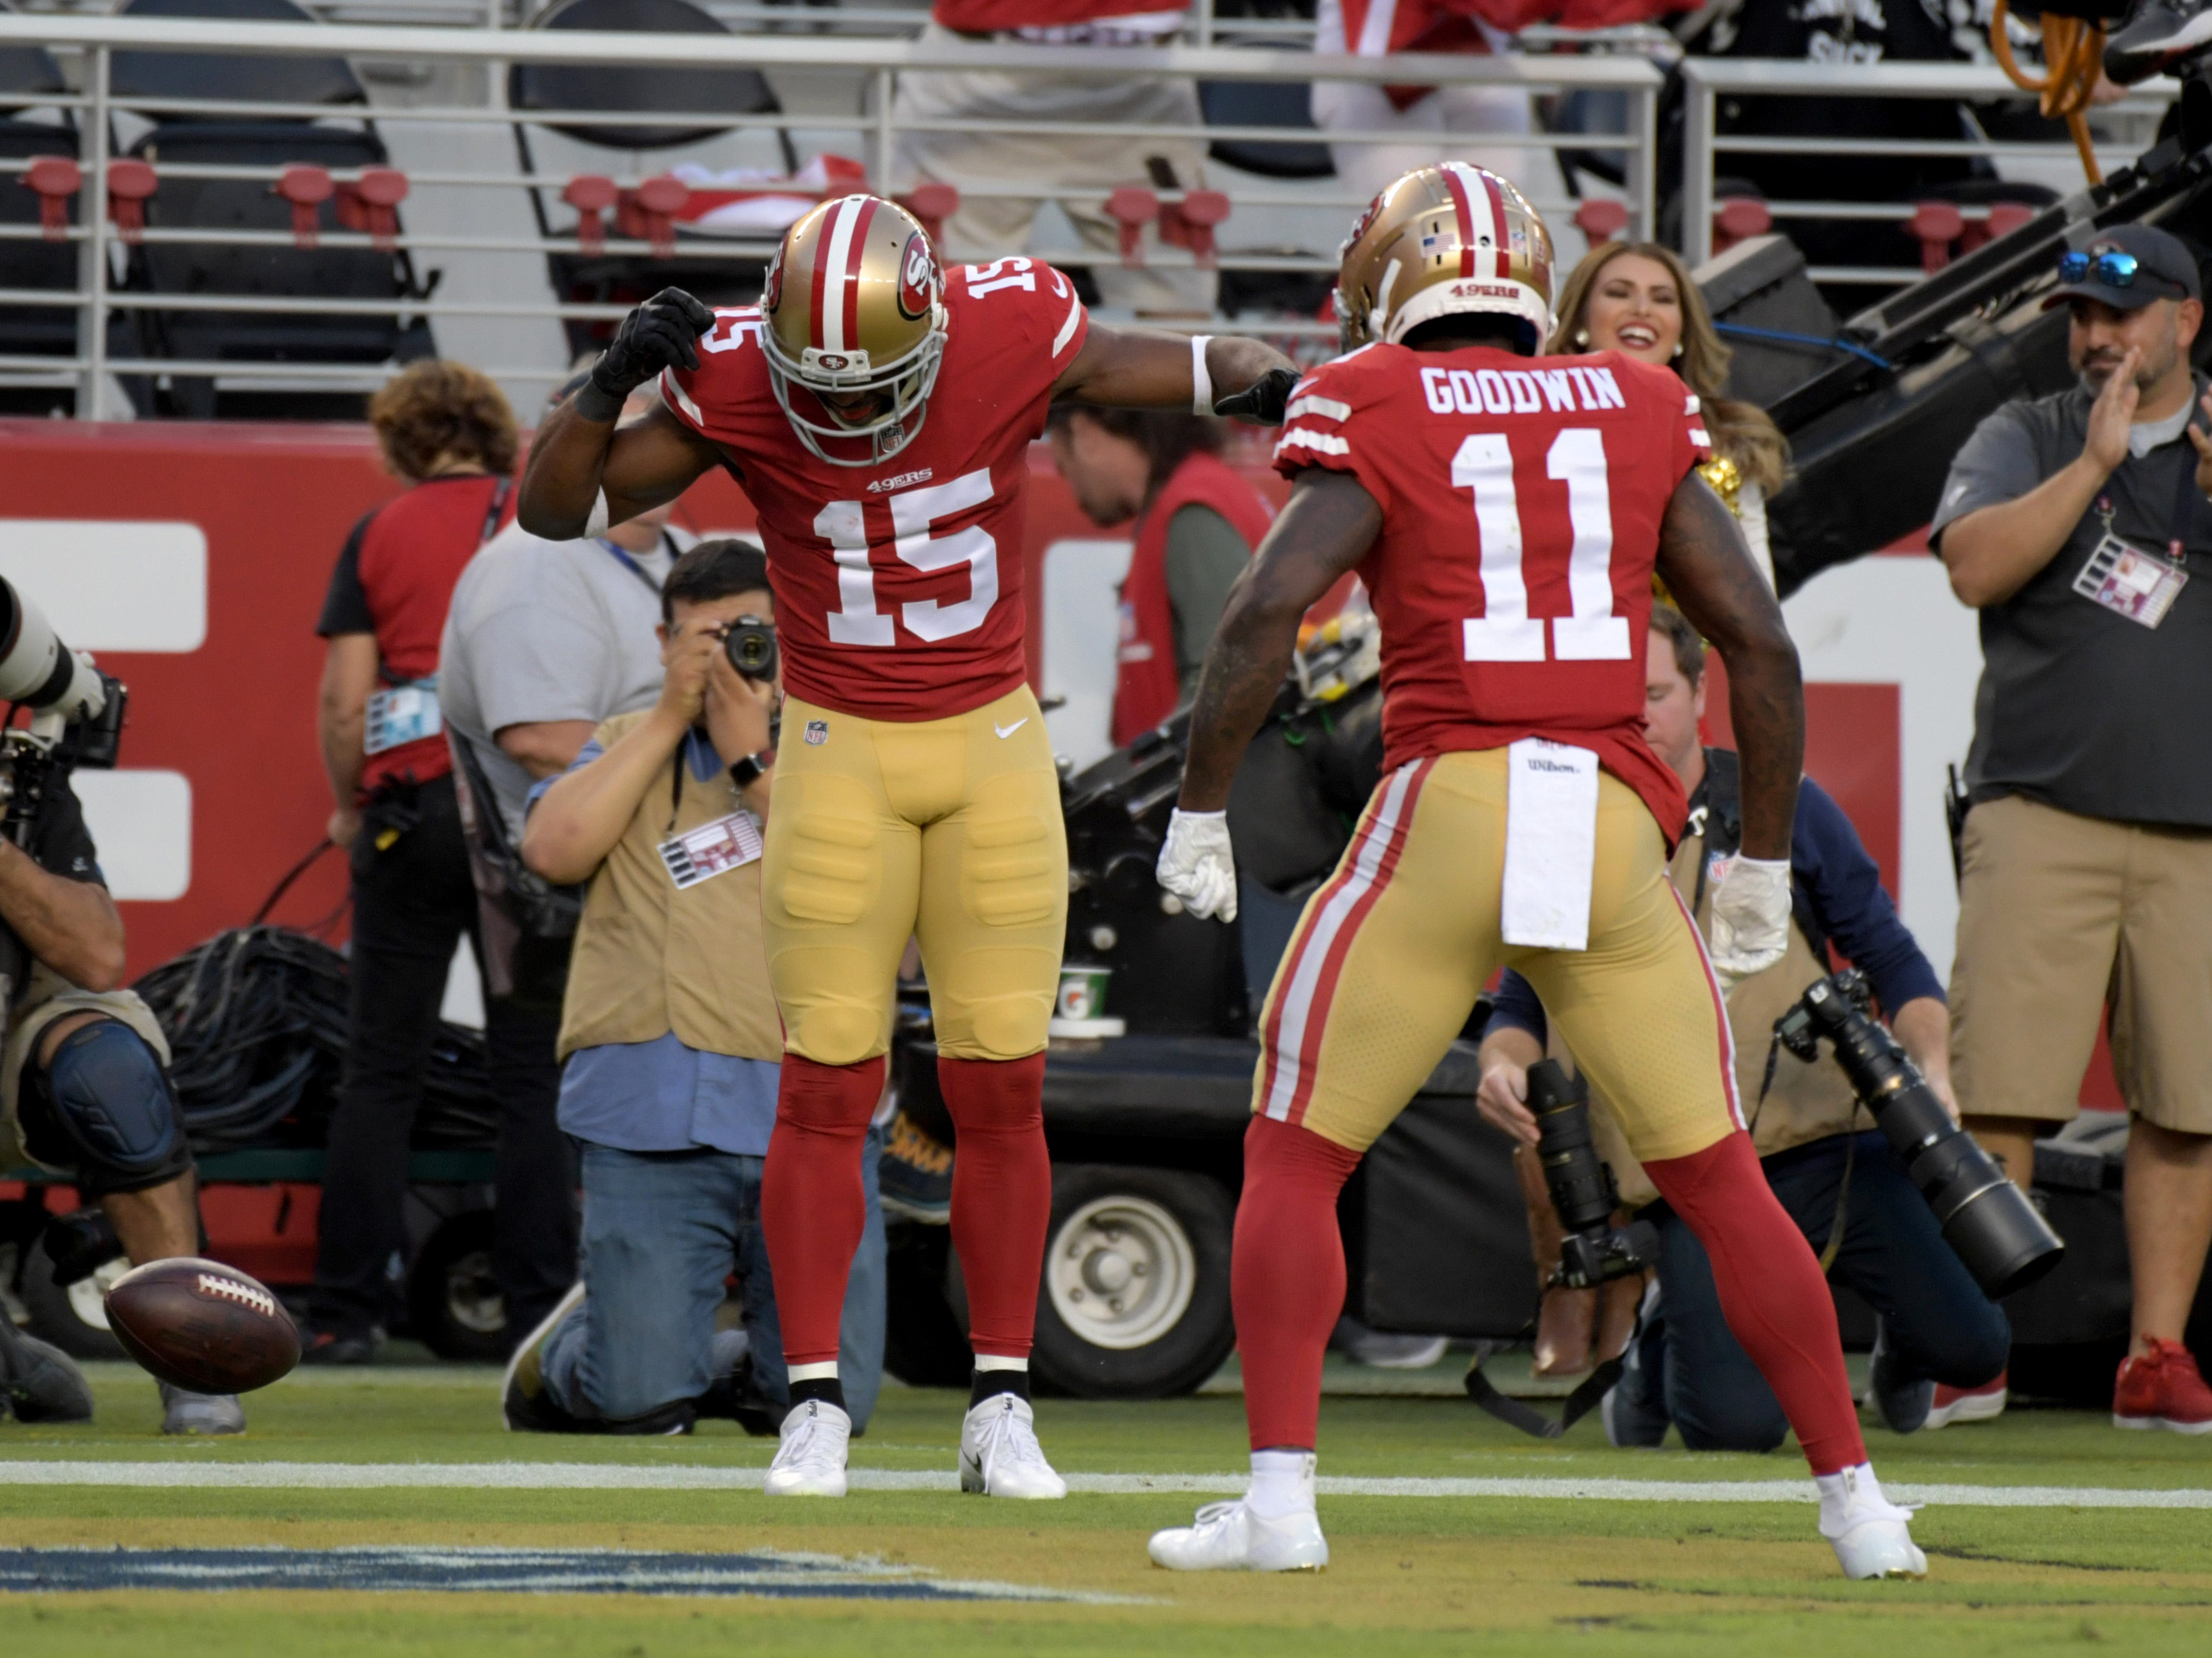 San Francisco 49ers wide receiver Pierre Garcon (15) is congratulated by wide receiver Marquise Goodwin (11) after scoring a touchdown against the Oakland Raiders during the half at Levi's Stadium.